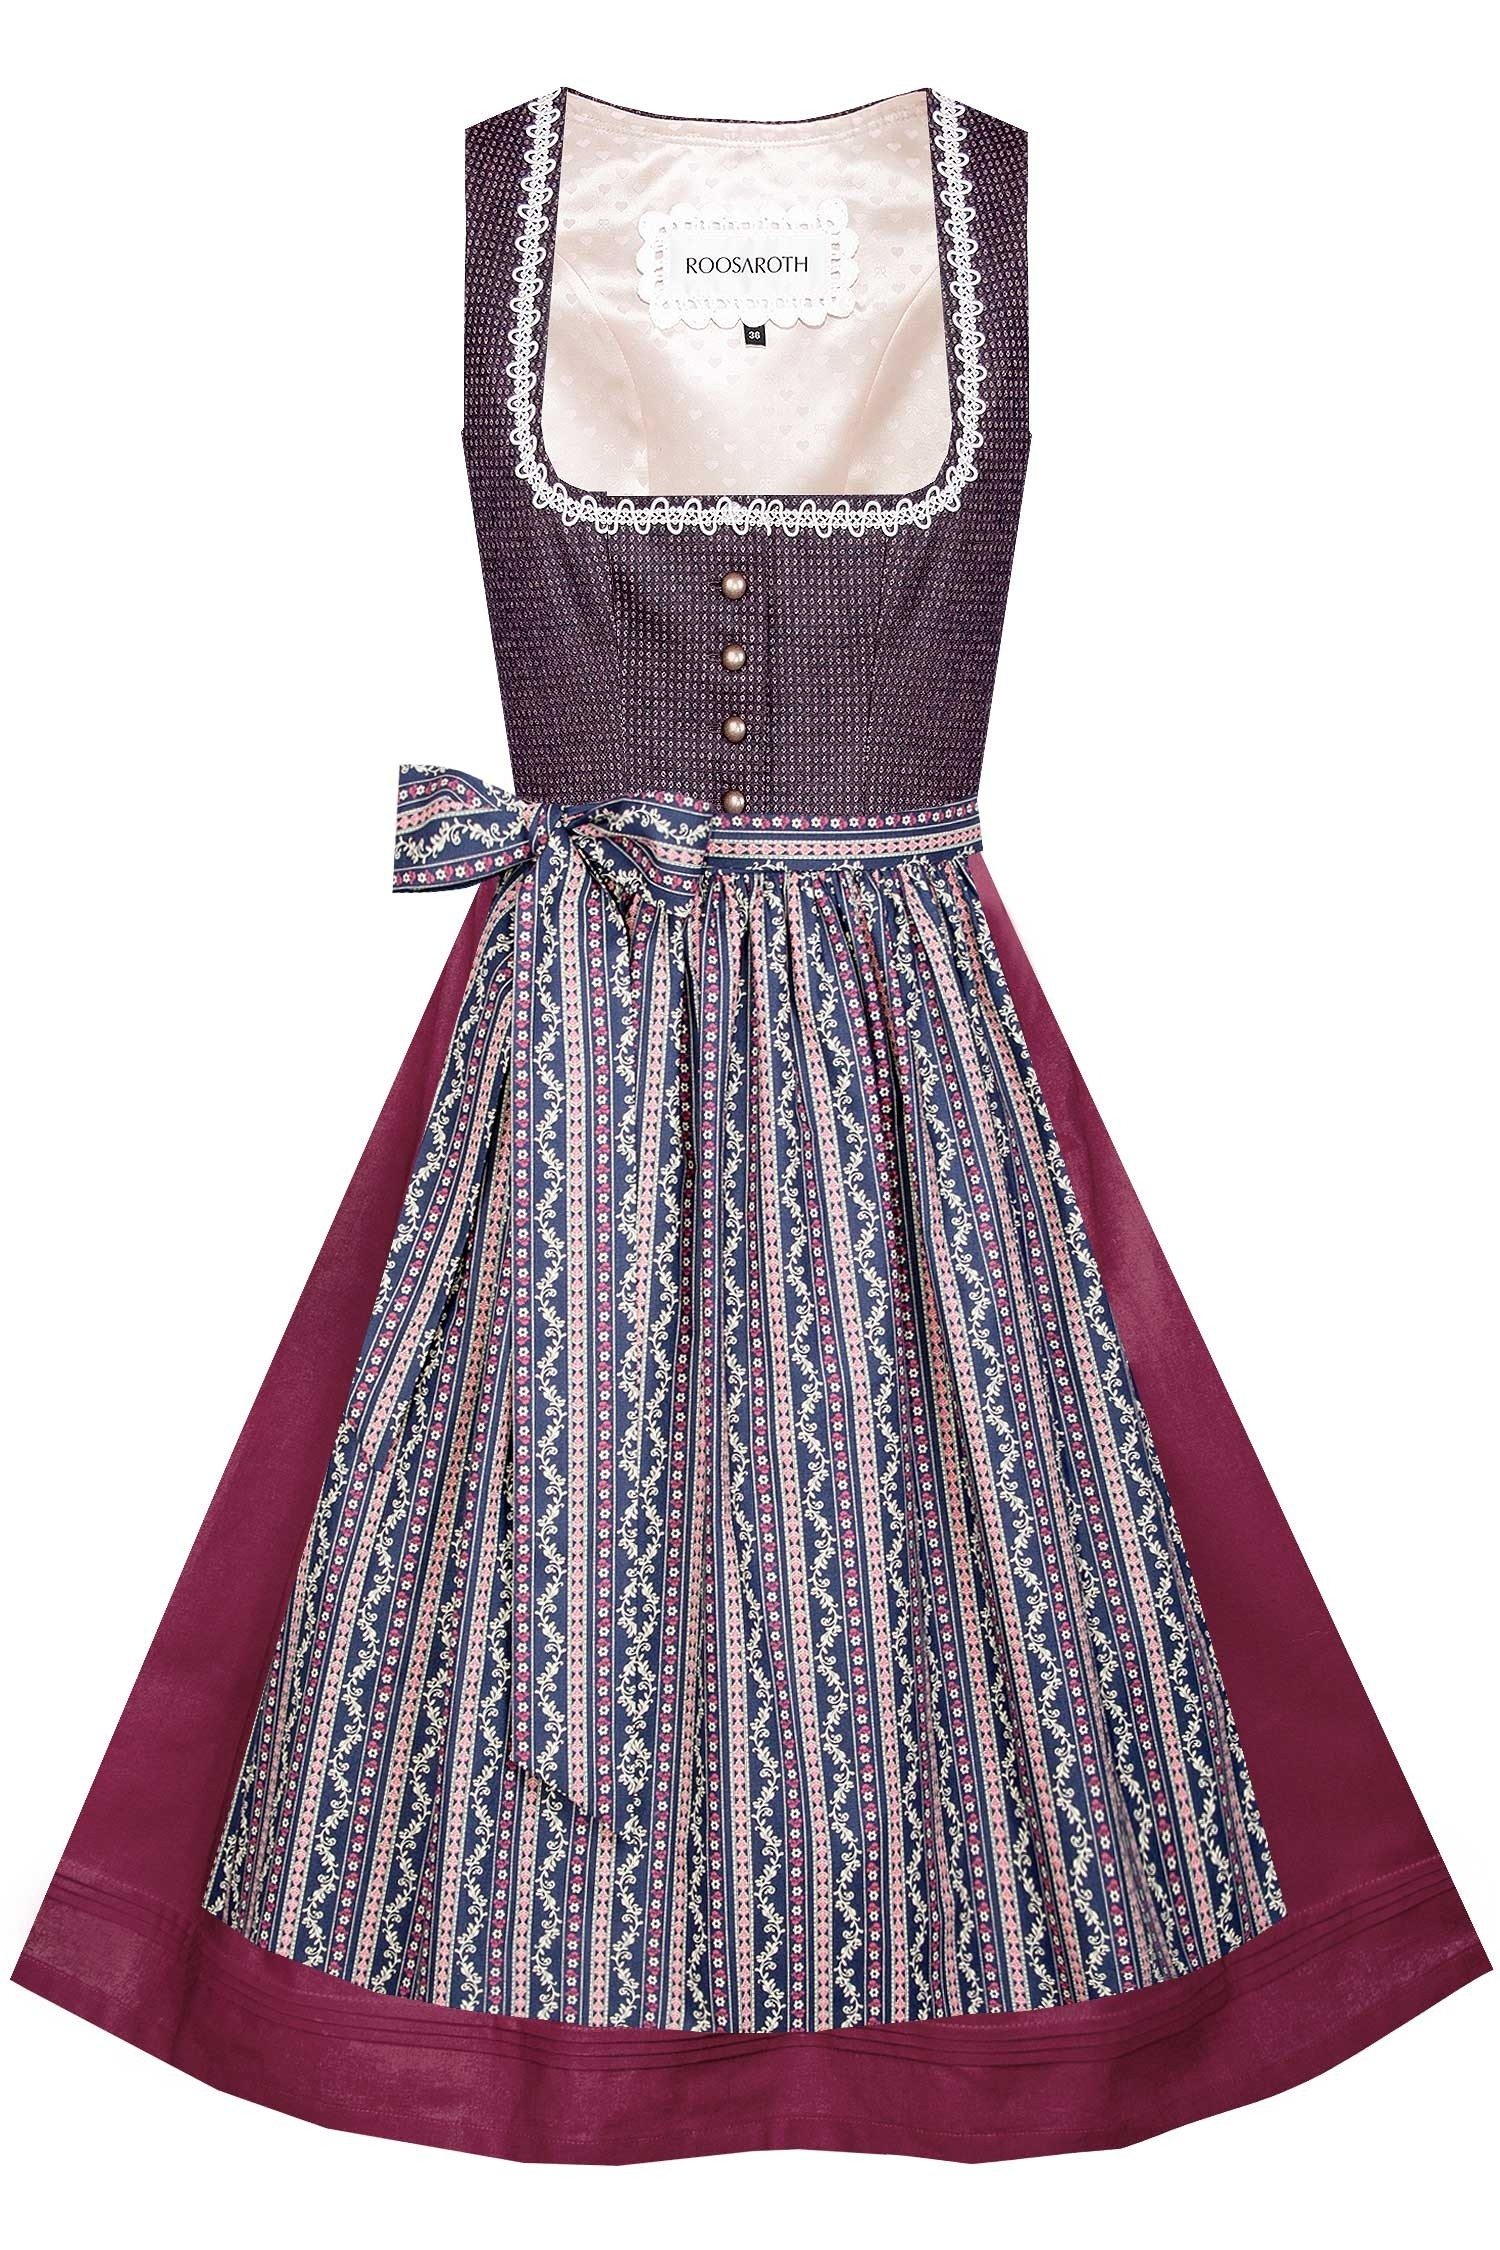 DIRNDL MARIA FLUFFY ROSE